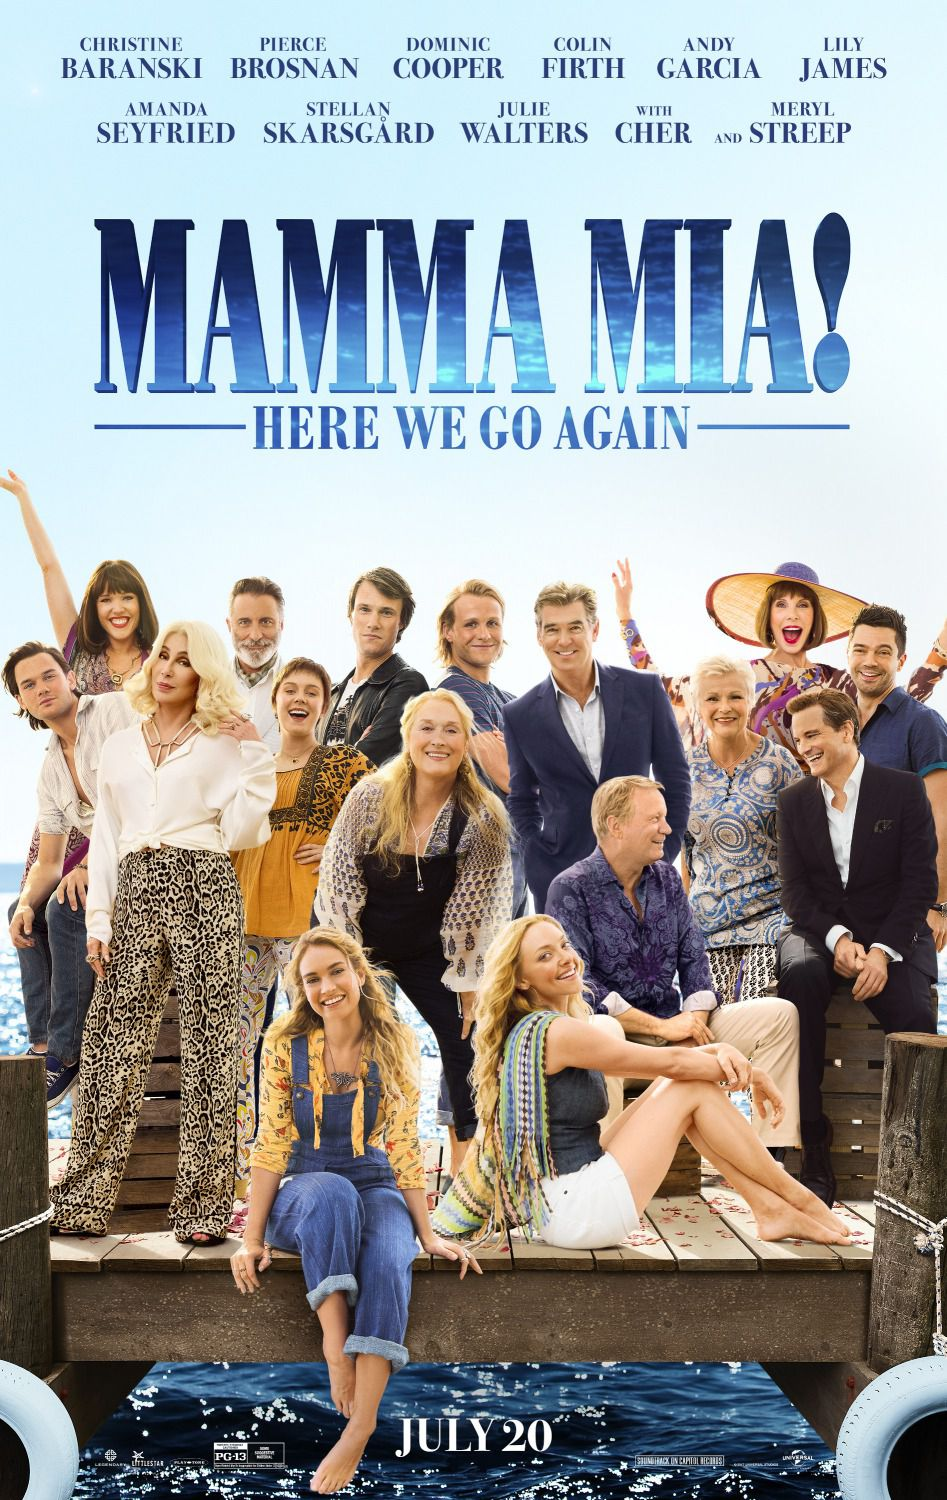 Mamma Mia 2 - here we go again 2018 - Meryl Streep, Lily James, Amanda Seyfried, Pierce Brosnan - film poster